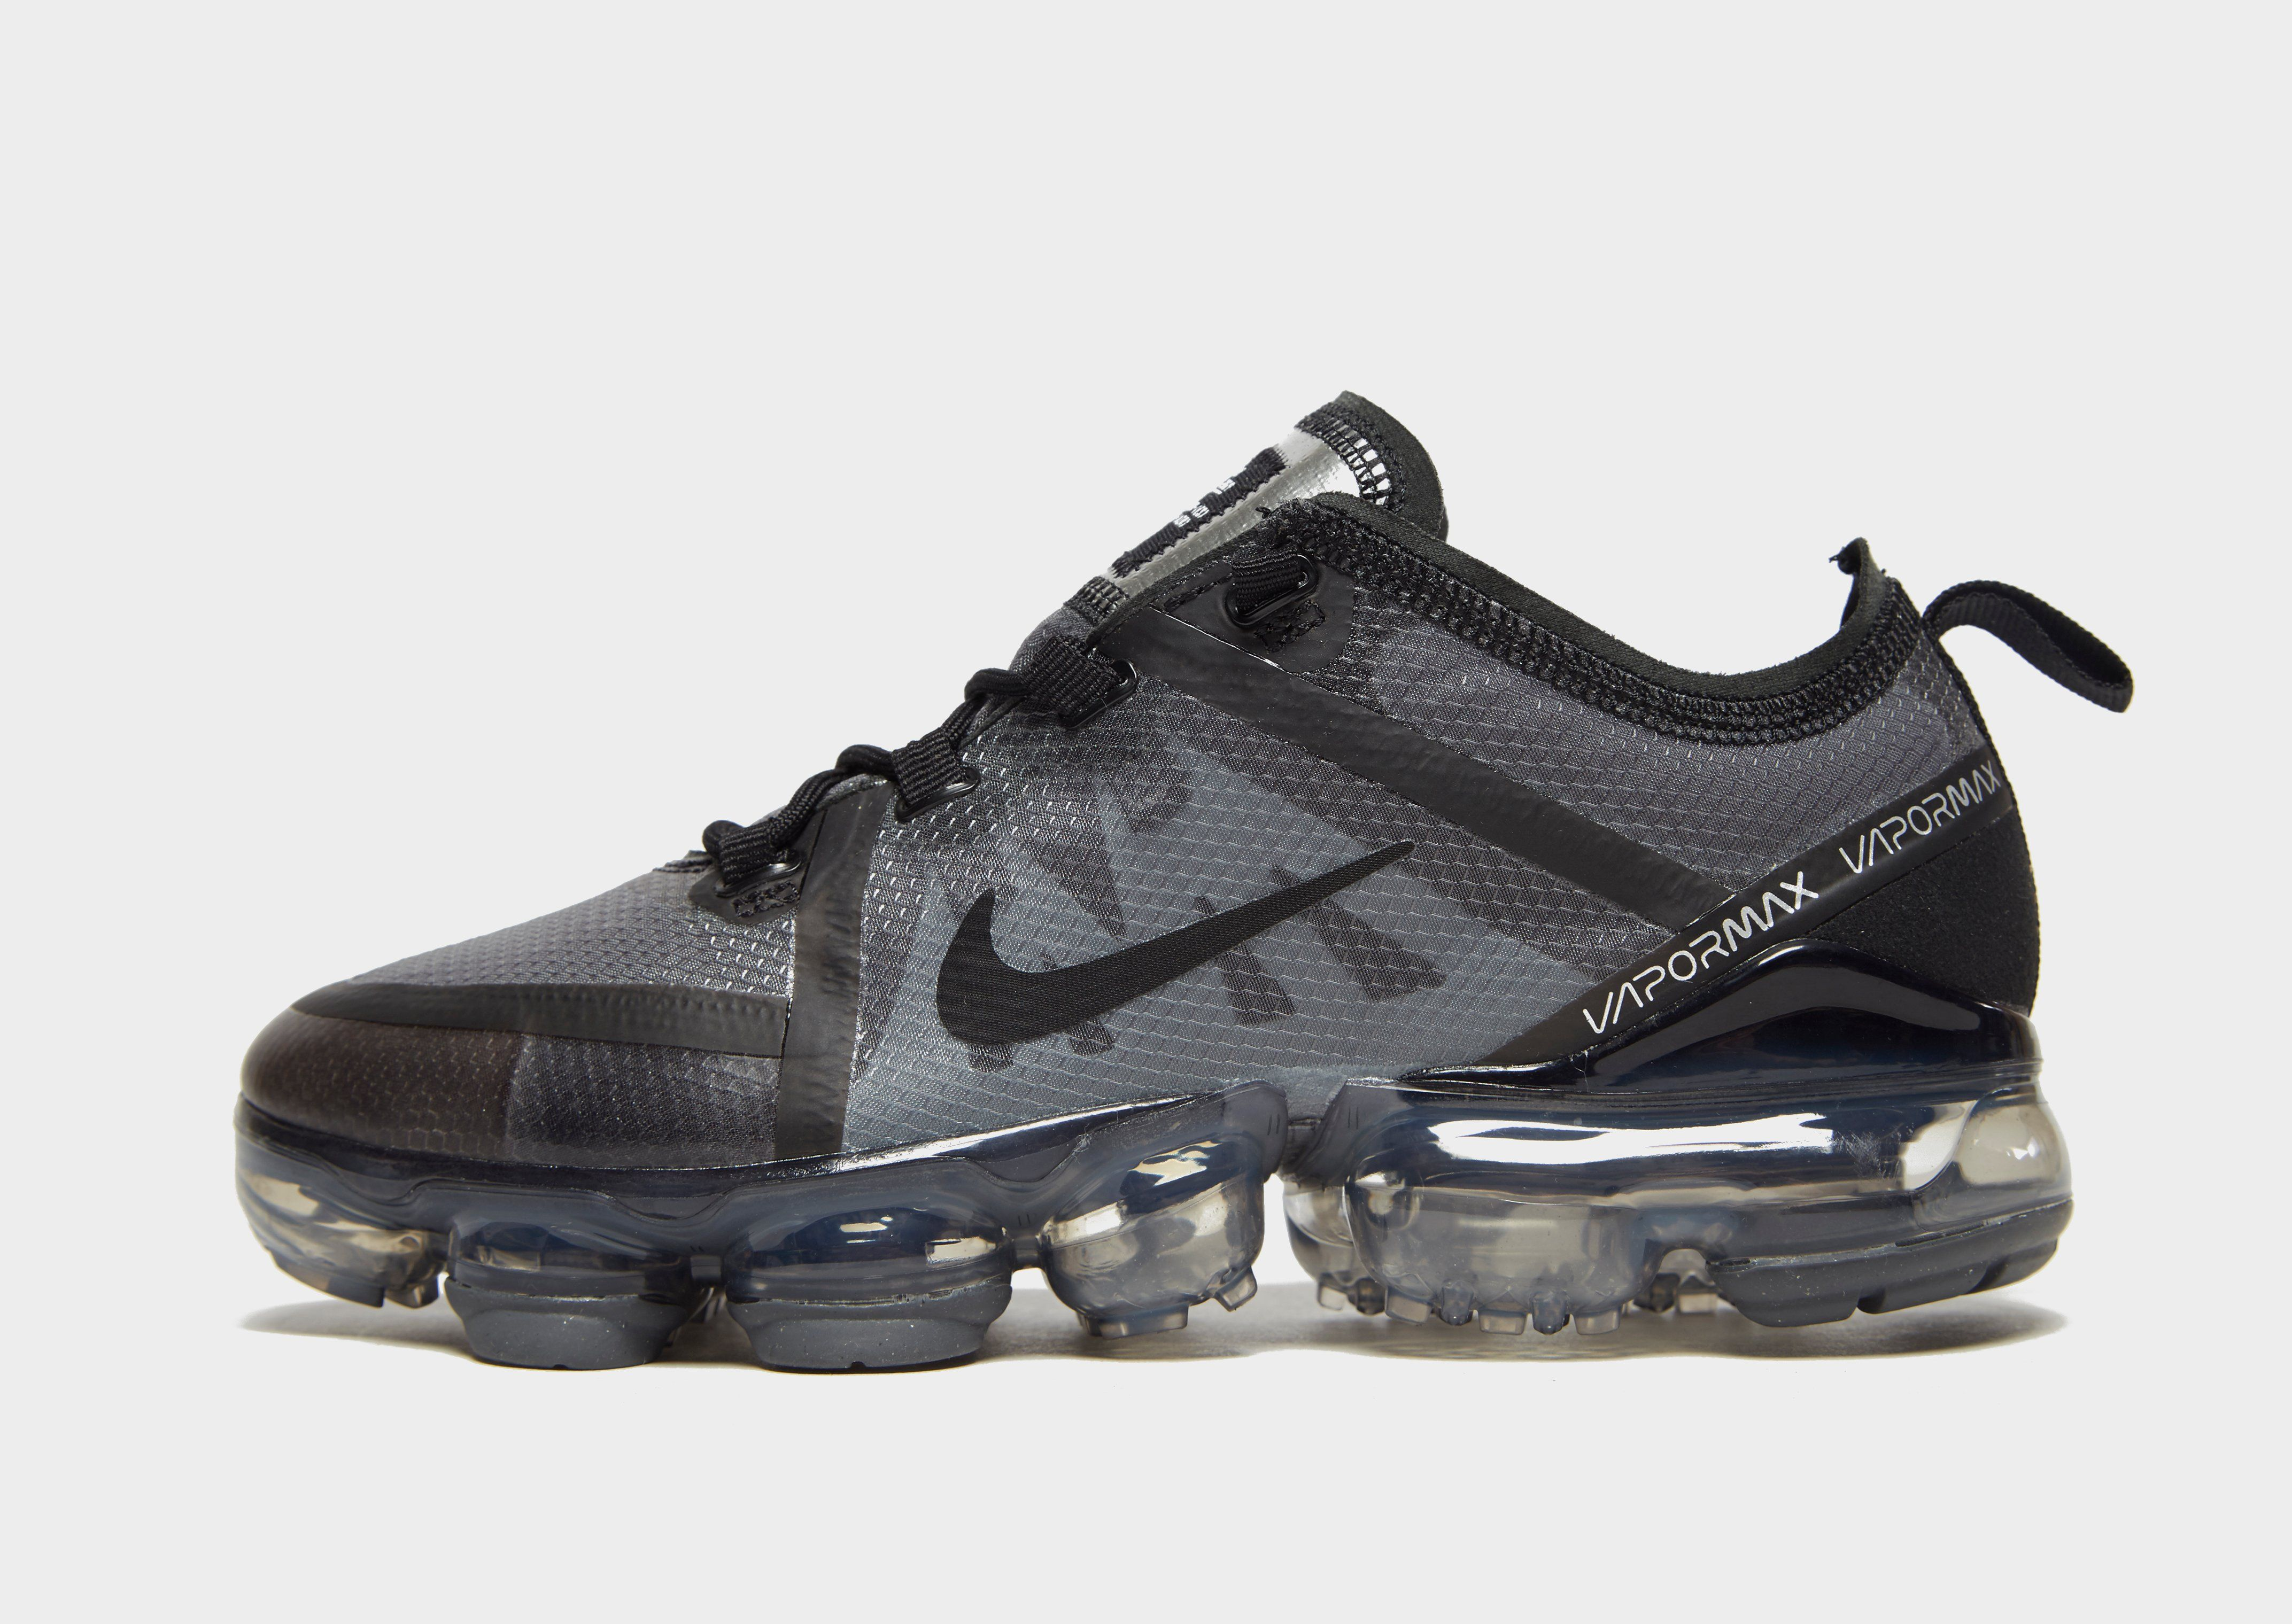 lowest price 60615 3a60a Nike Air VaporMax 2019 Older Kids' Shoe | JD Sports